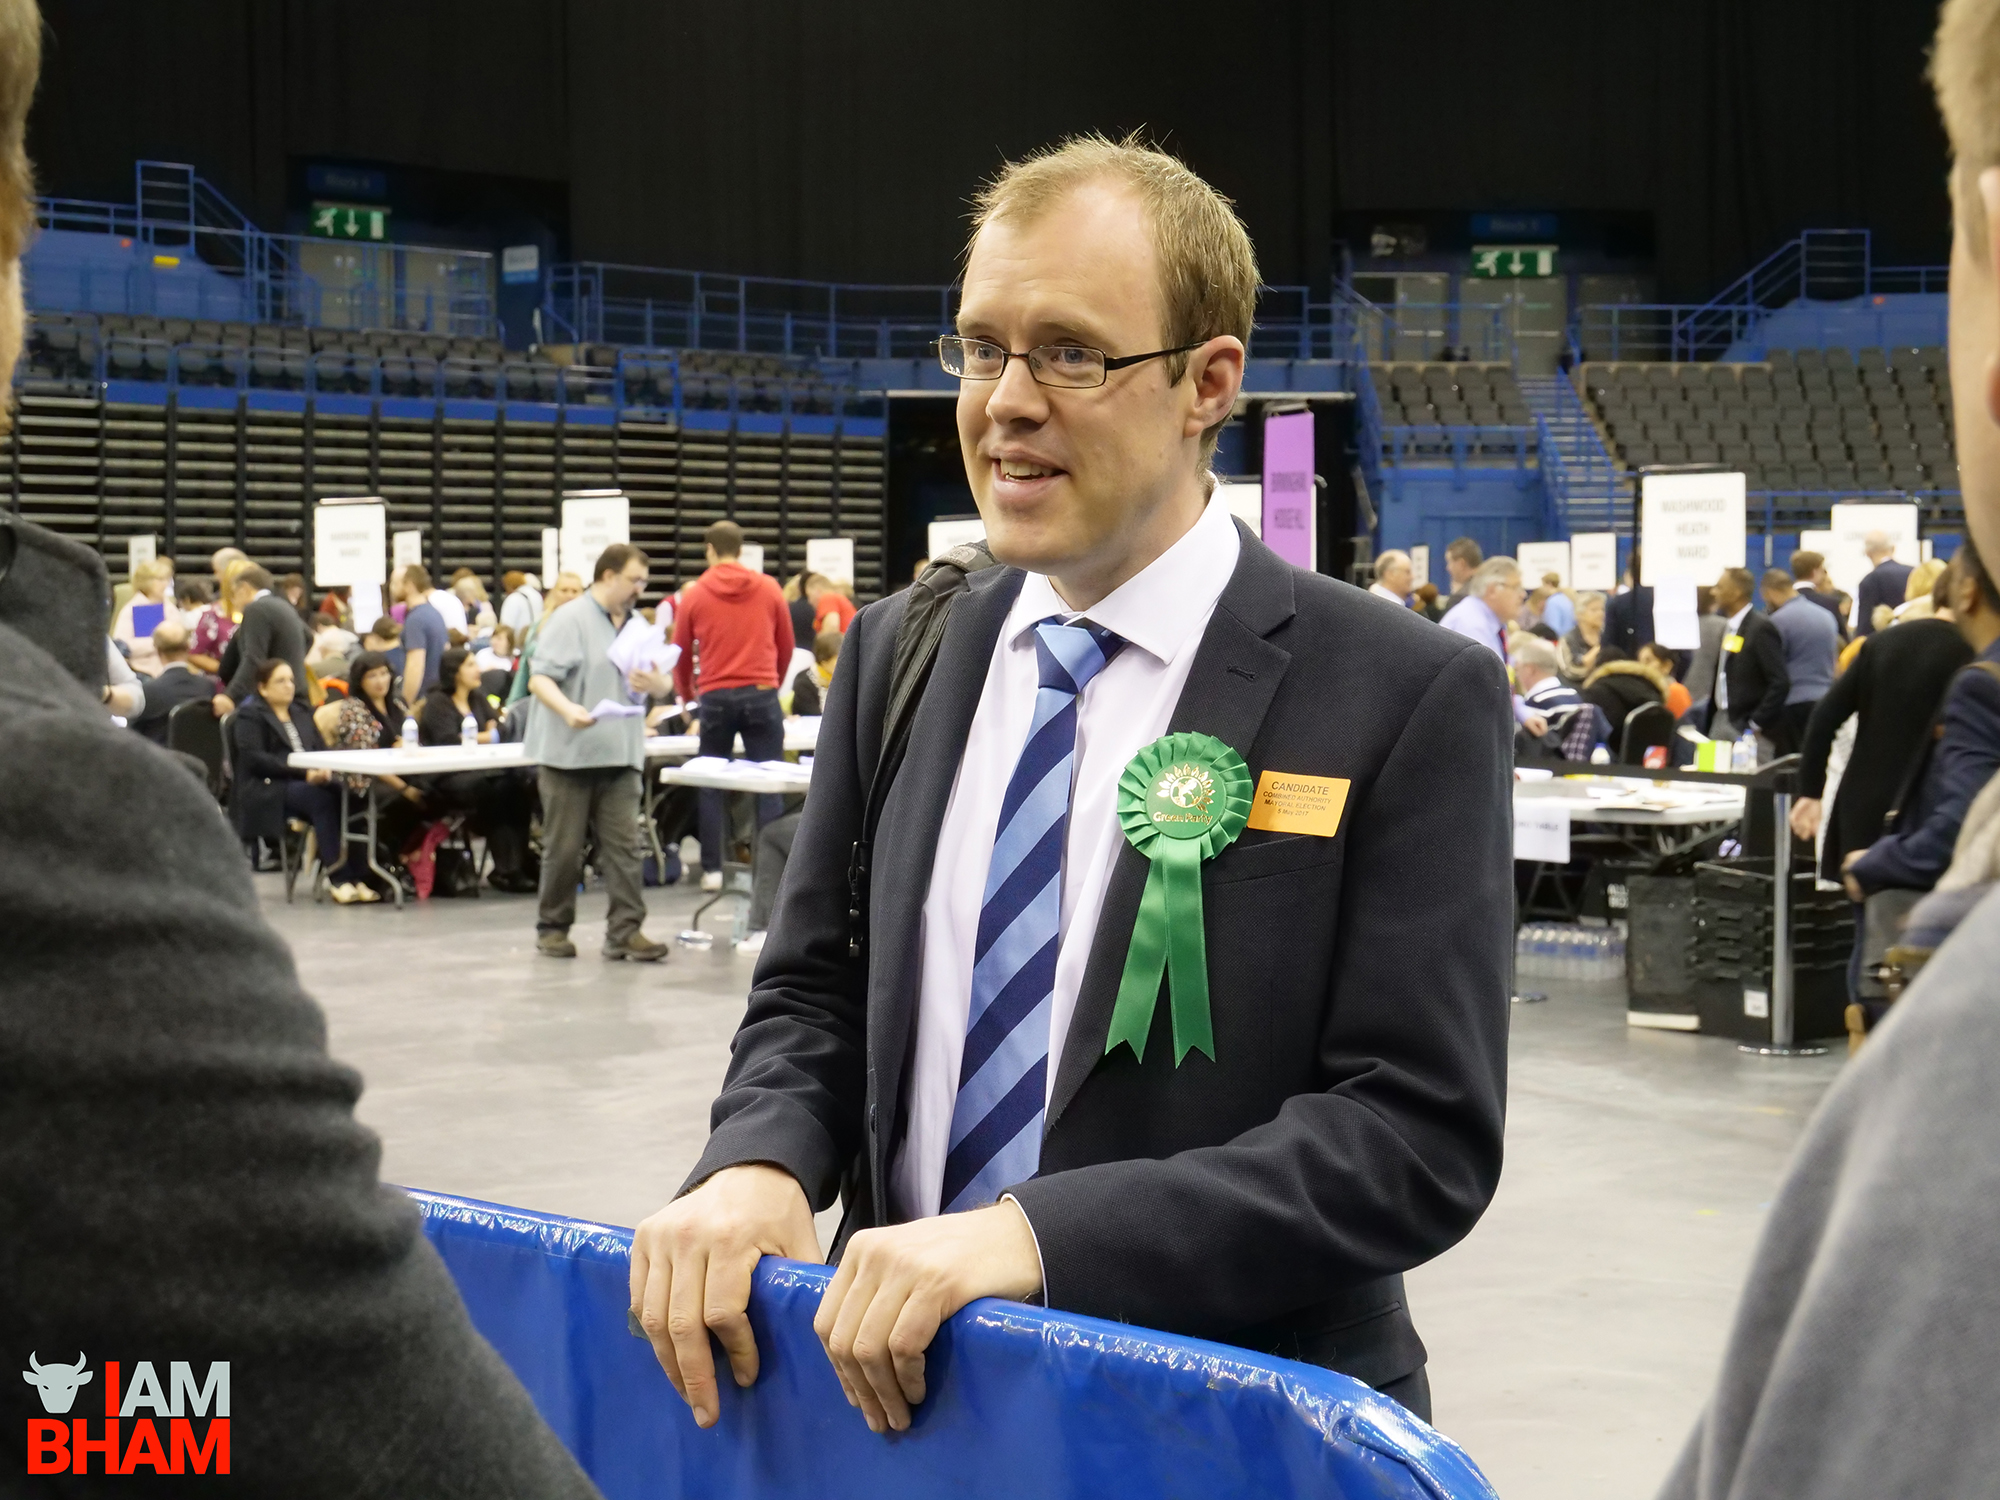 Green Party candidate James Burns seems to be in good spirits at the West Midlands Mayoral Election vote count at the Birmingham Barclaycard Arena